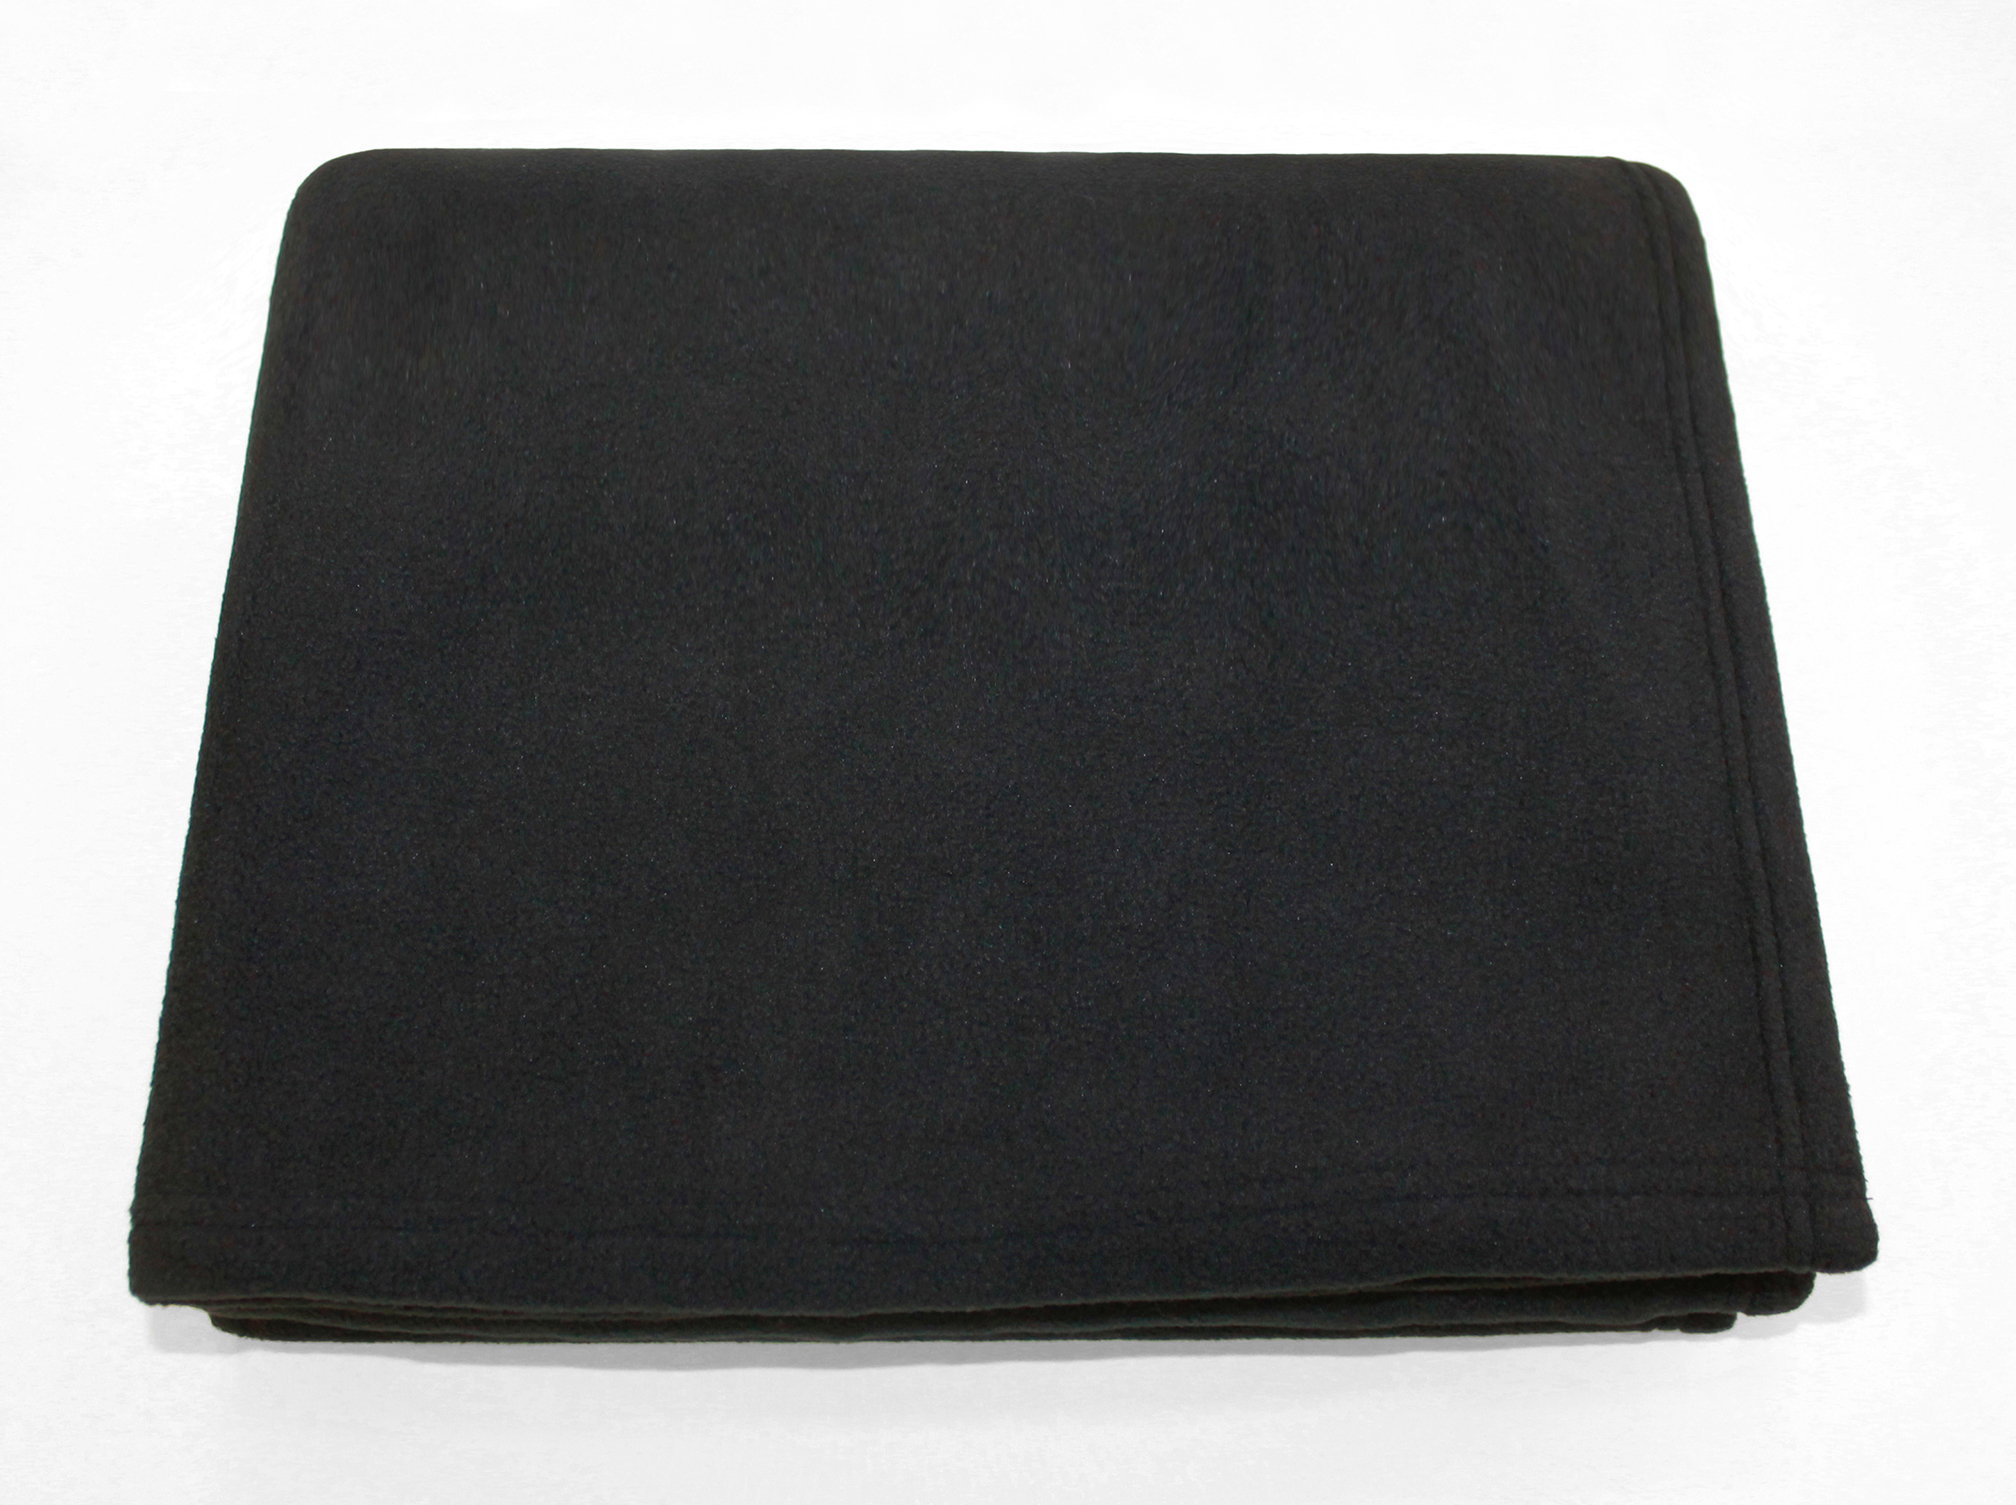 promo_fleece_blanket_black-lo